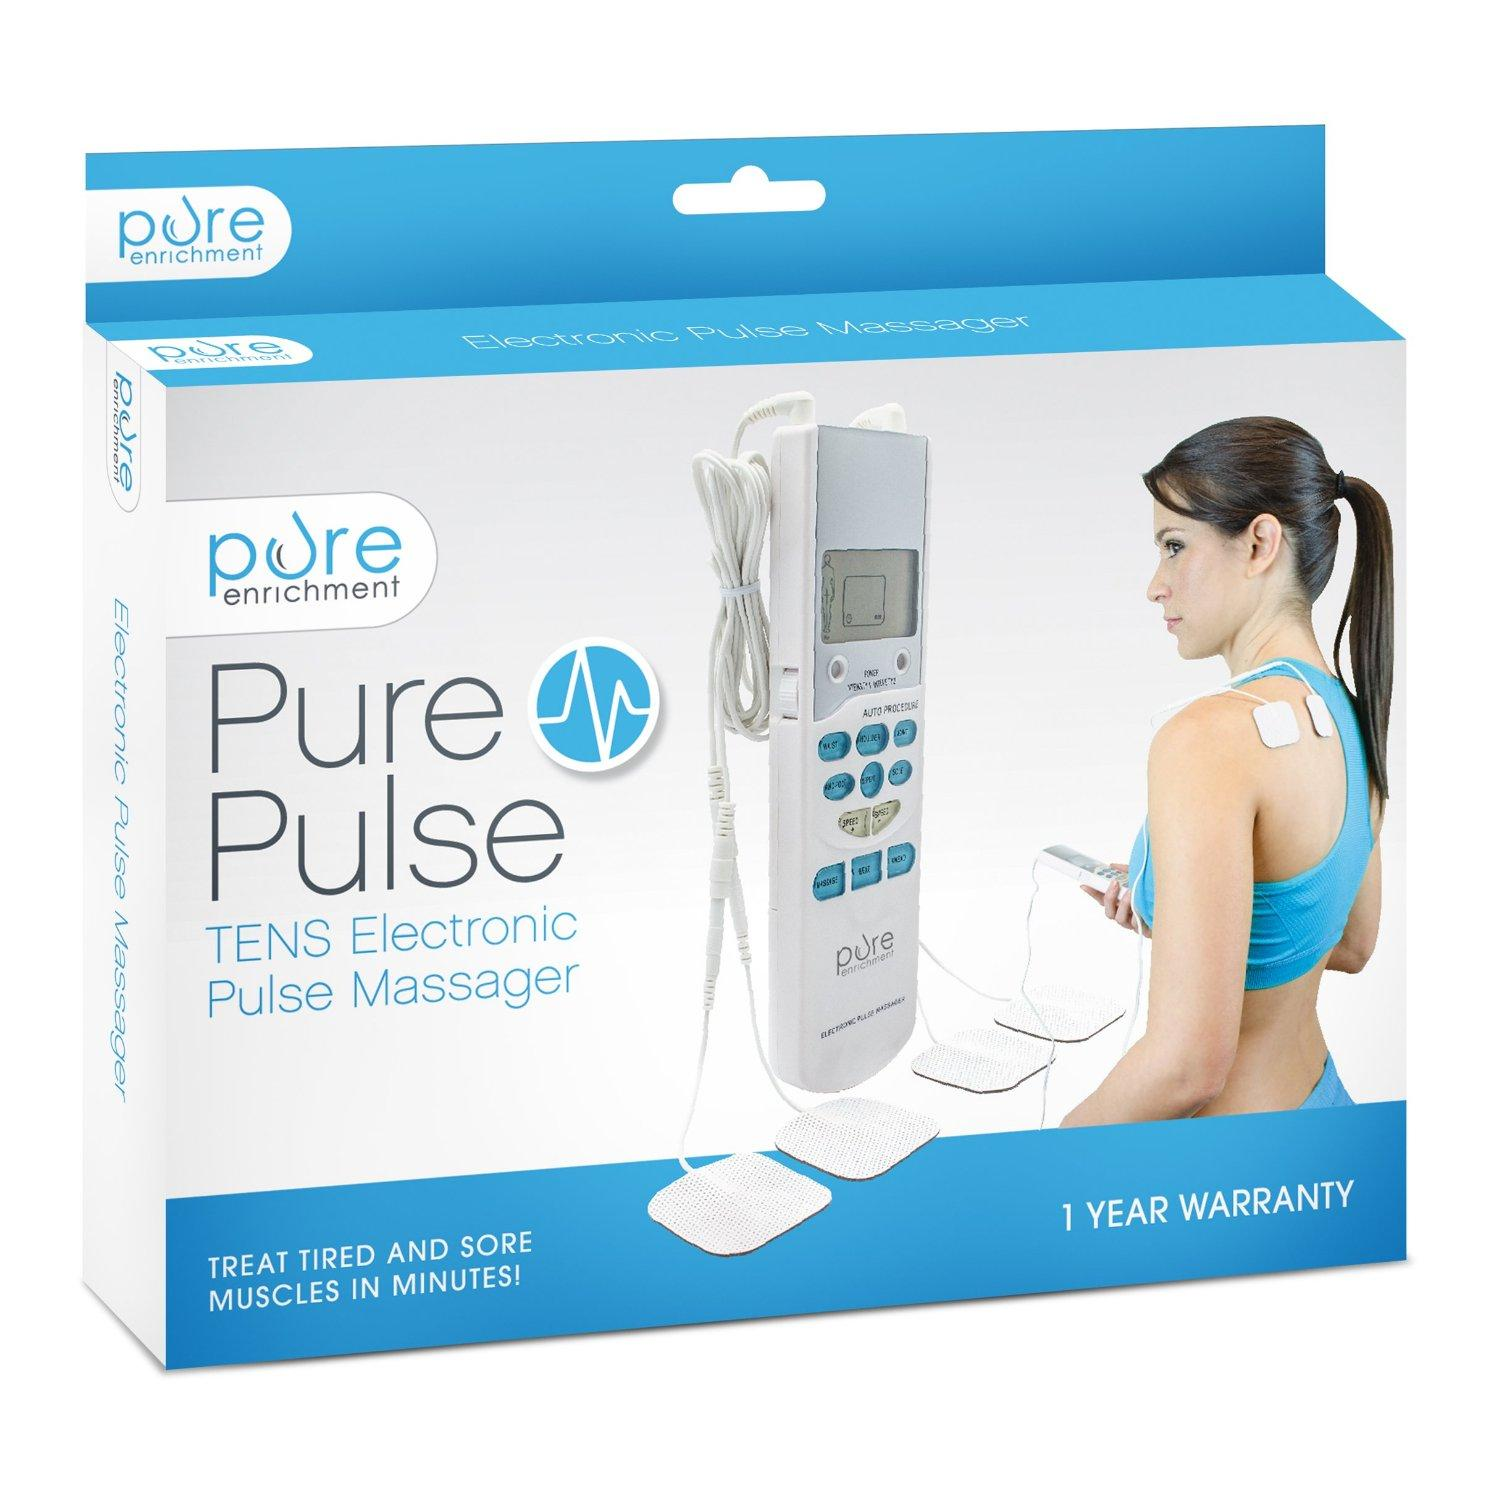 $19.99 Lightning deal-PurePulse Electronic Pulse Massager